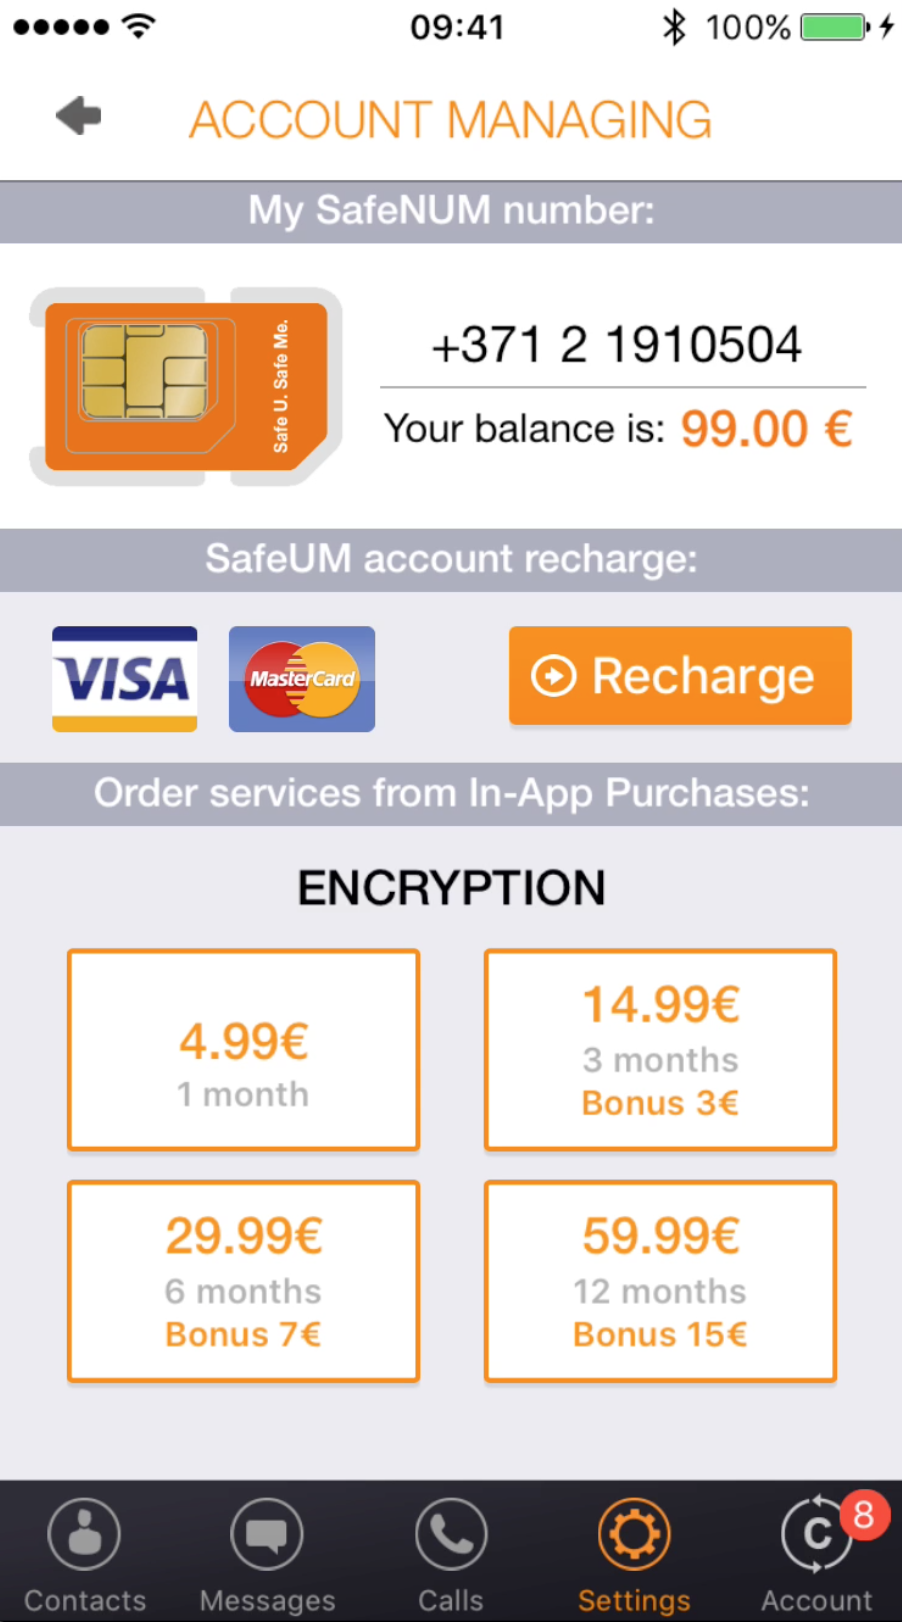 SafeUM - Each SafeUM user gets free anonymous phone number